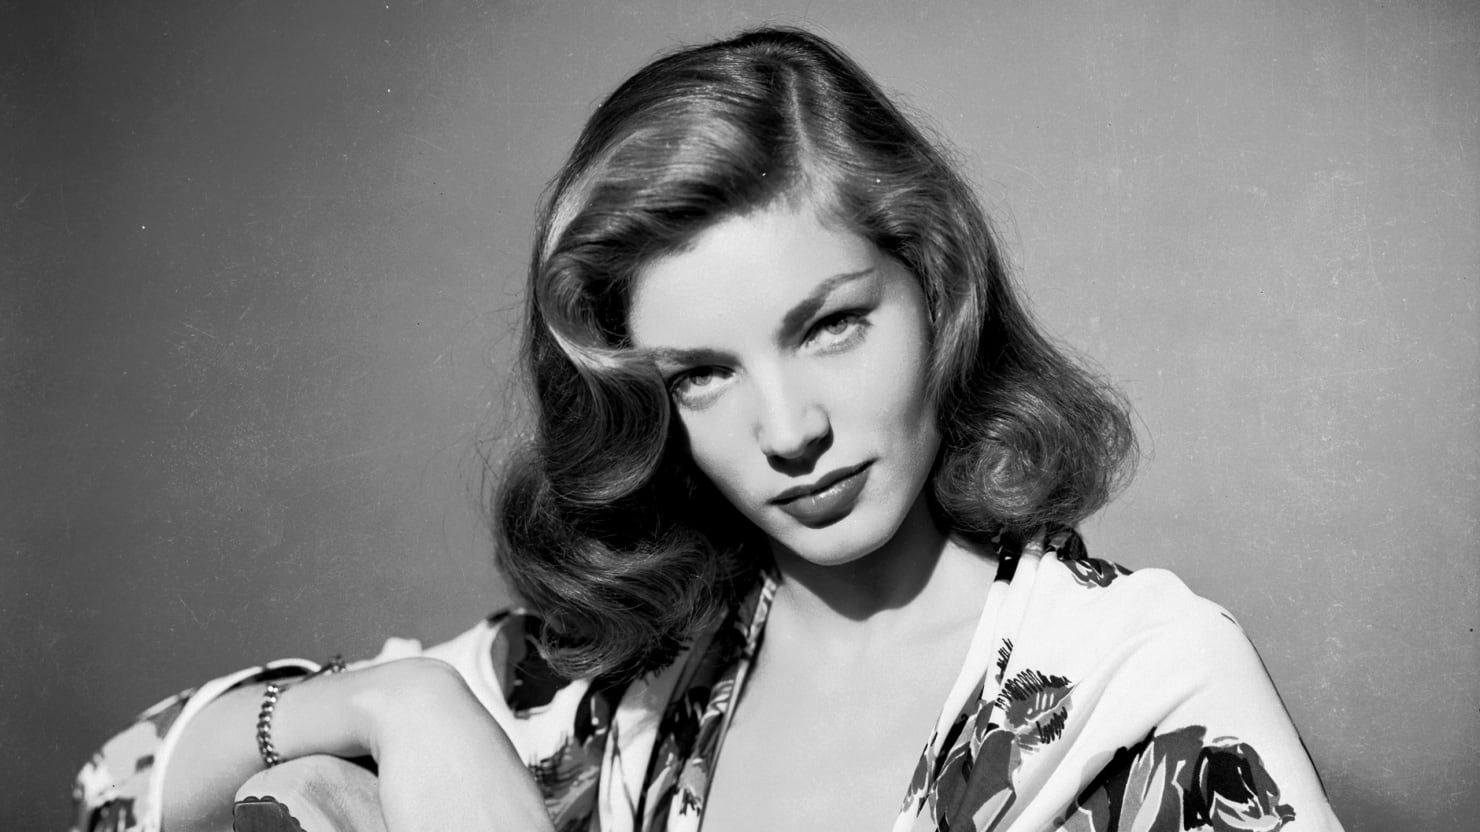 The Legend With The Look Remembering Lauren Bacall